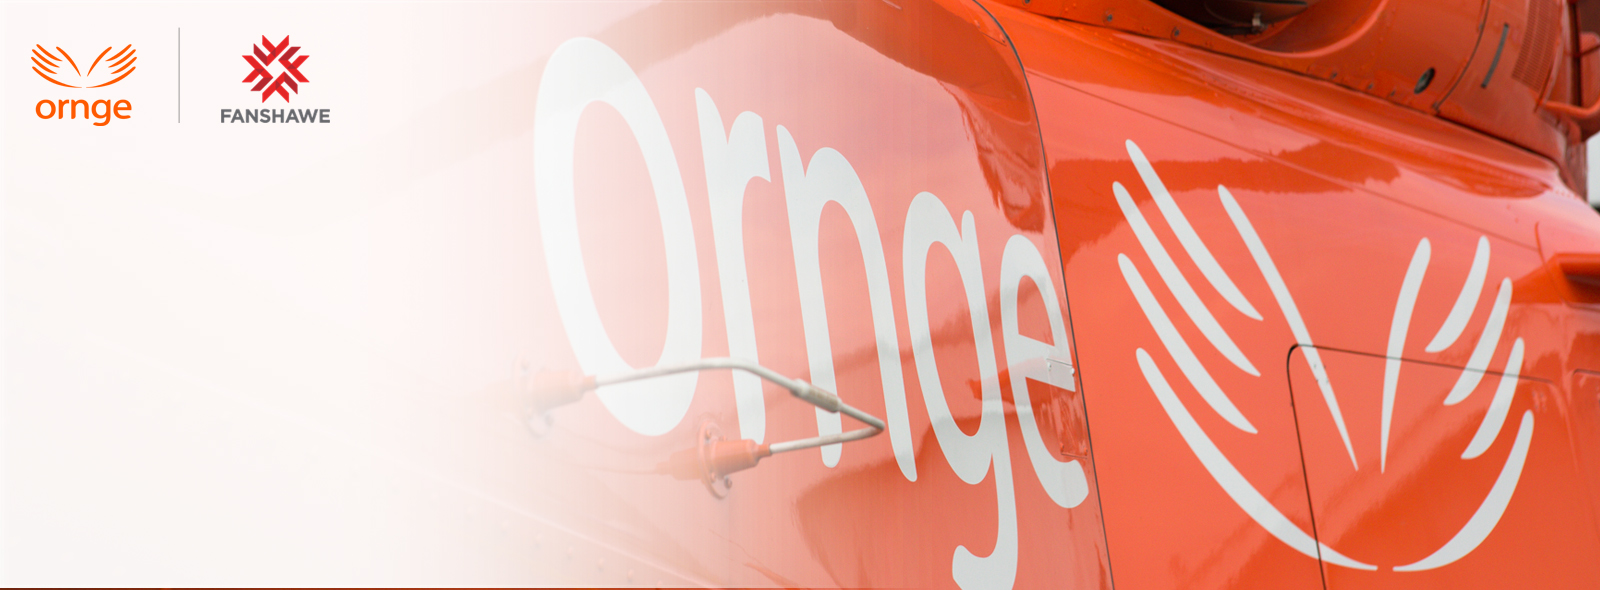 Ornge and Fanshawe College Press Release